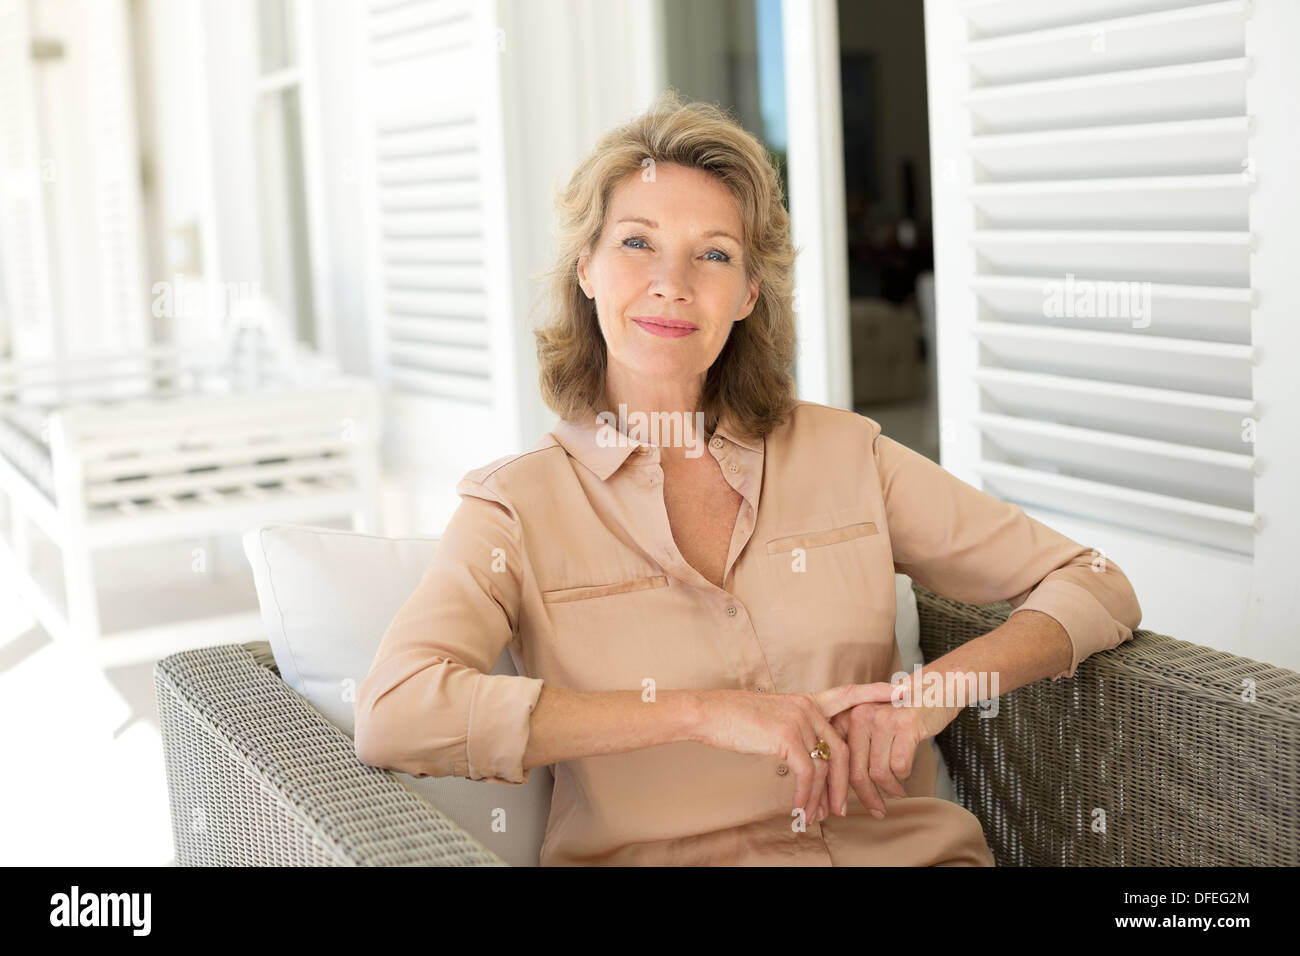 Portrait of smiling senior woman sitting on patio - Stock Image